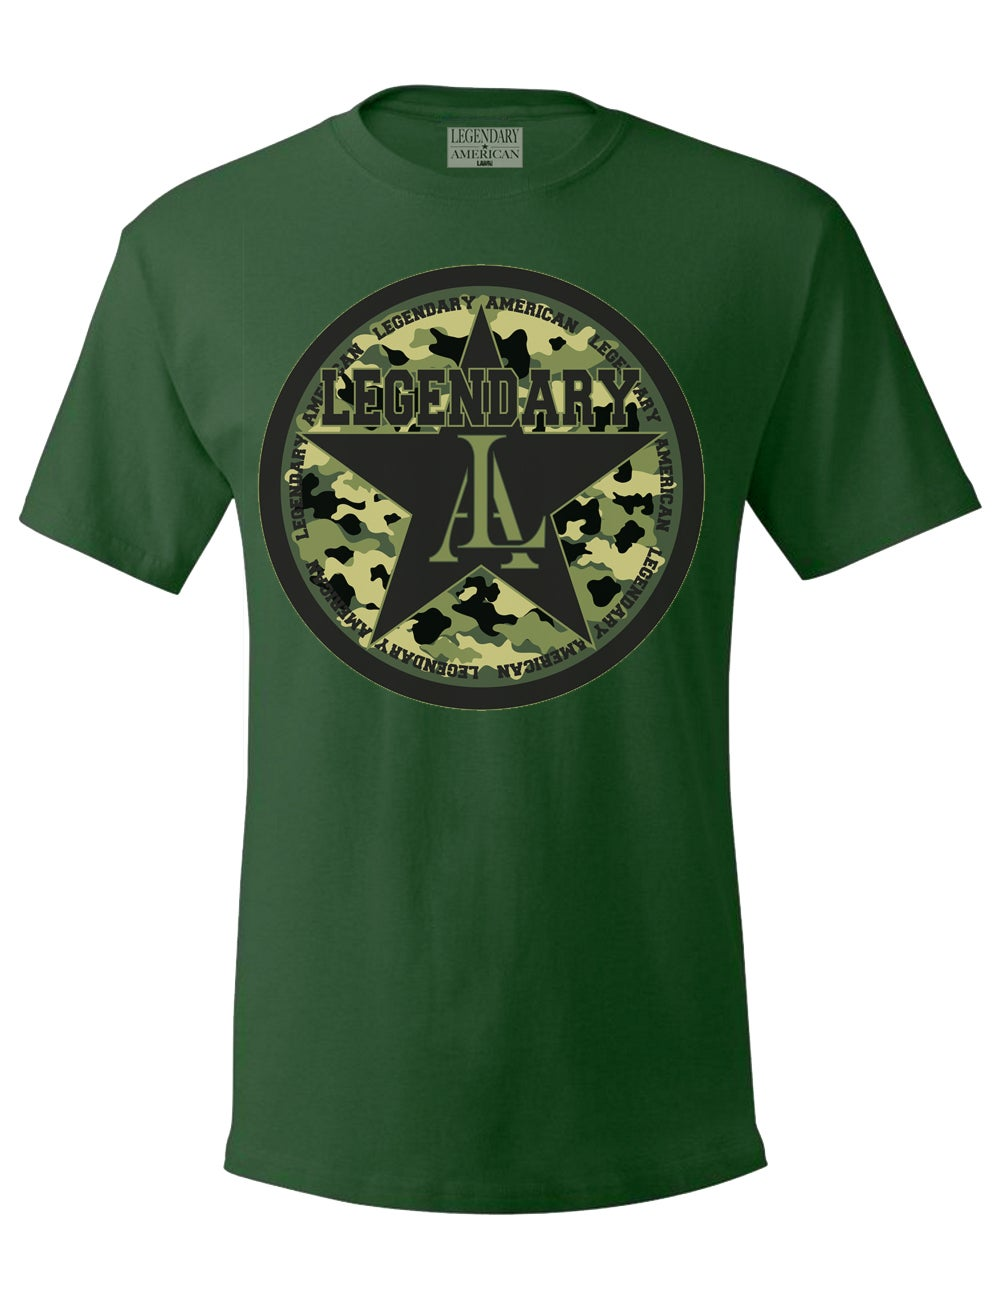 Image of Legendary American All Star camo tee in military green